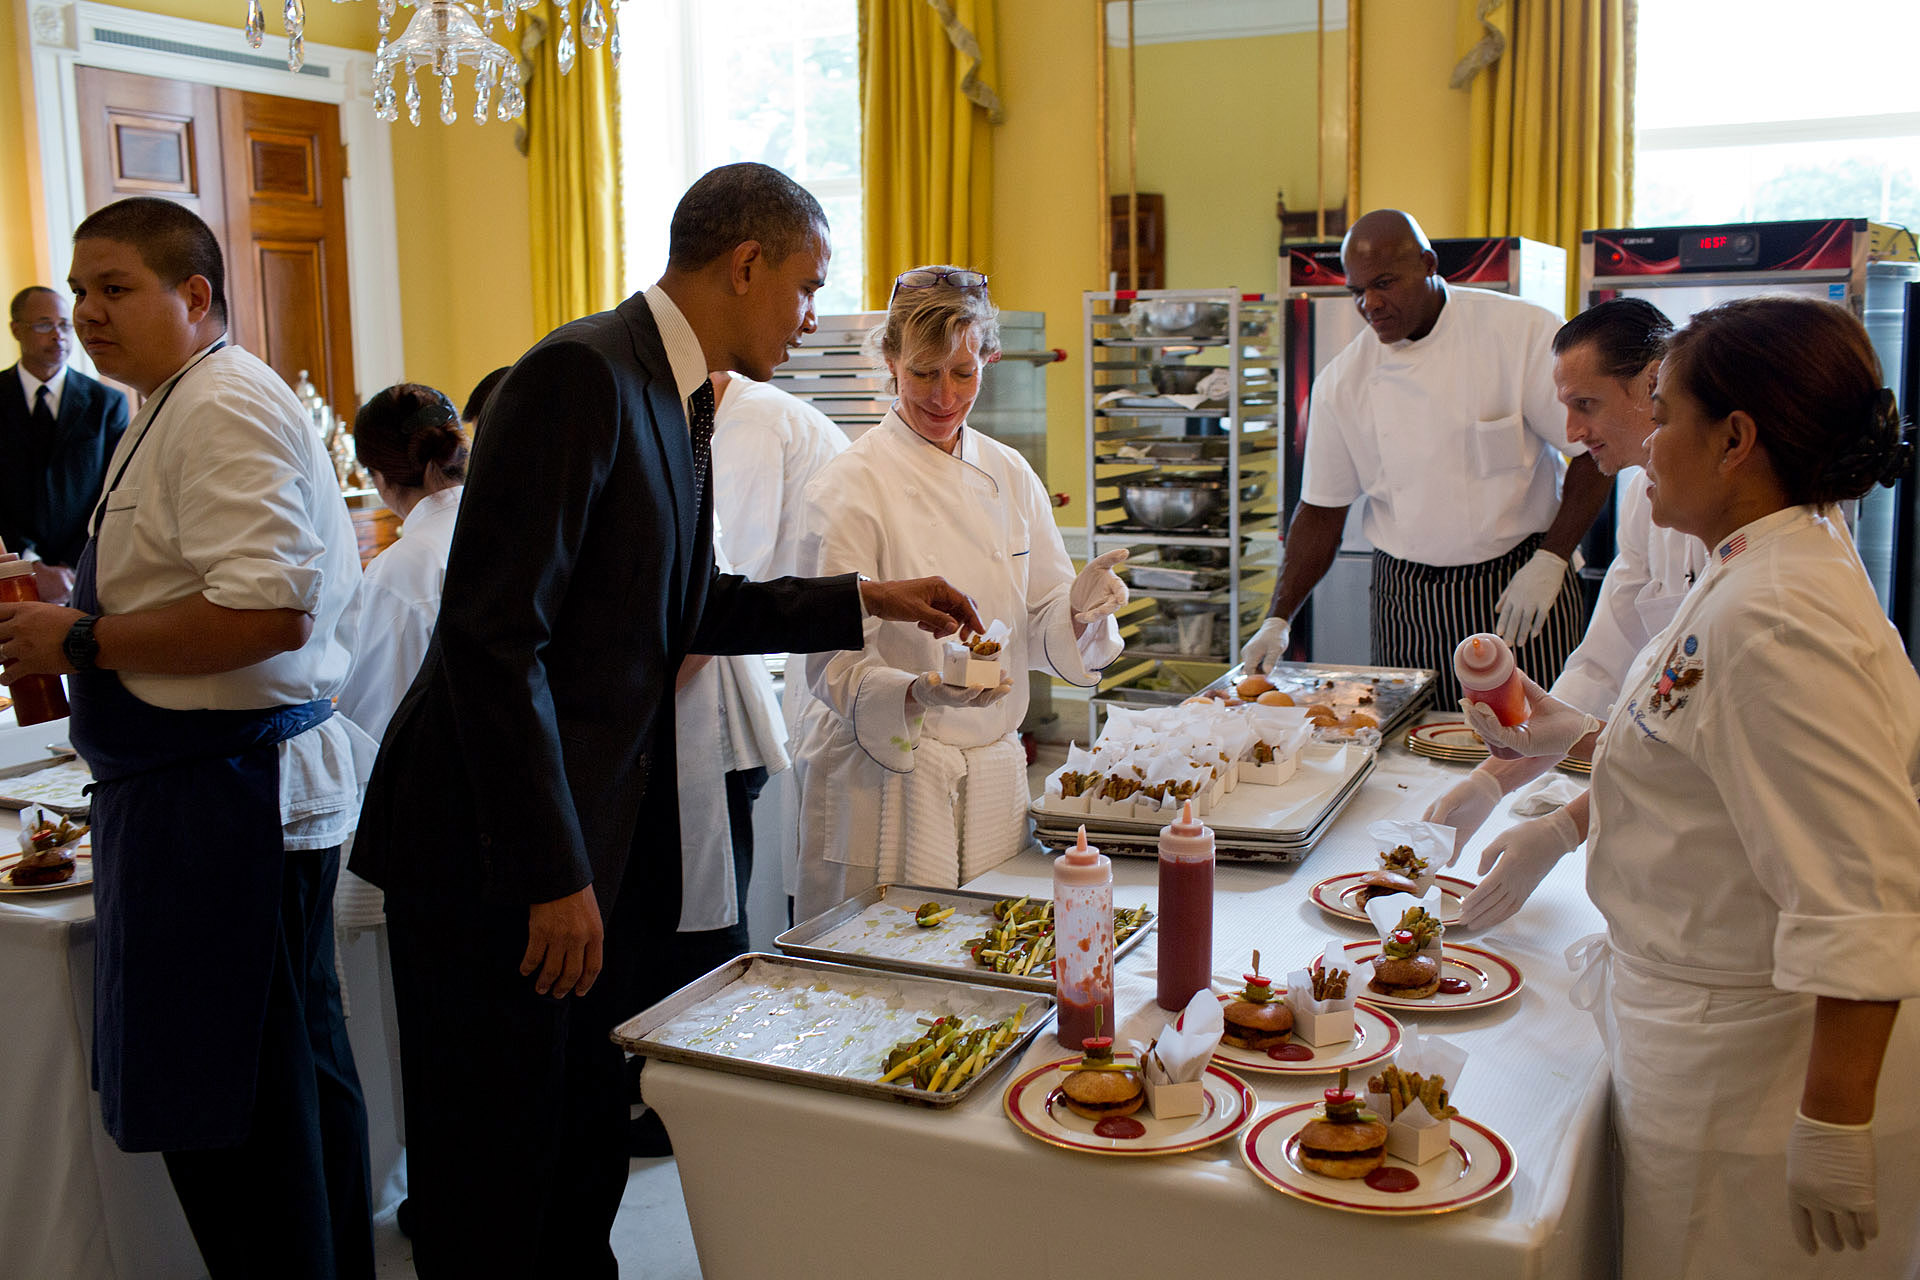 President Barack Obama Samples a Baked Zucchini Fry at the Epicurious Kids' State Dinner